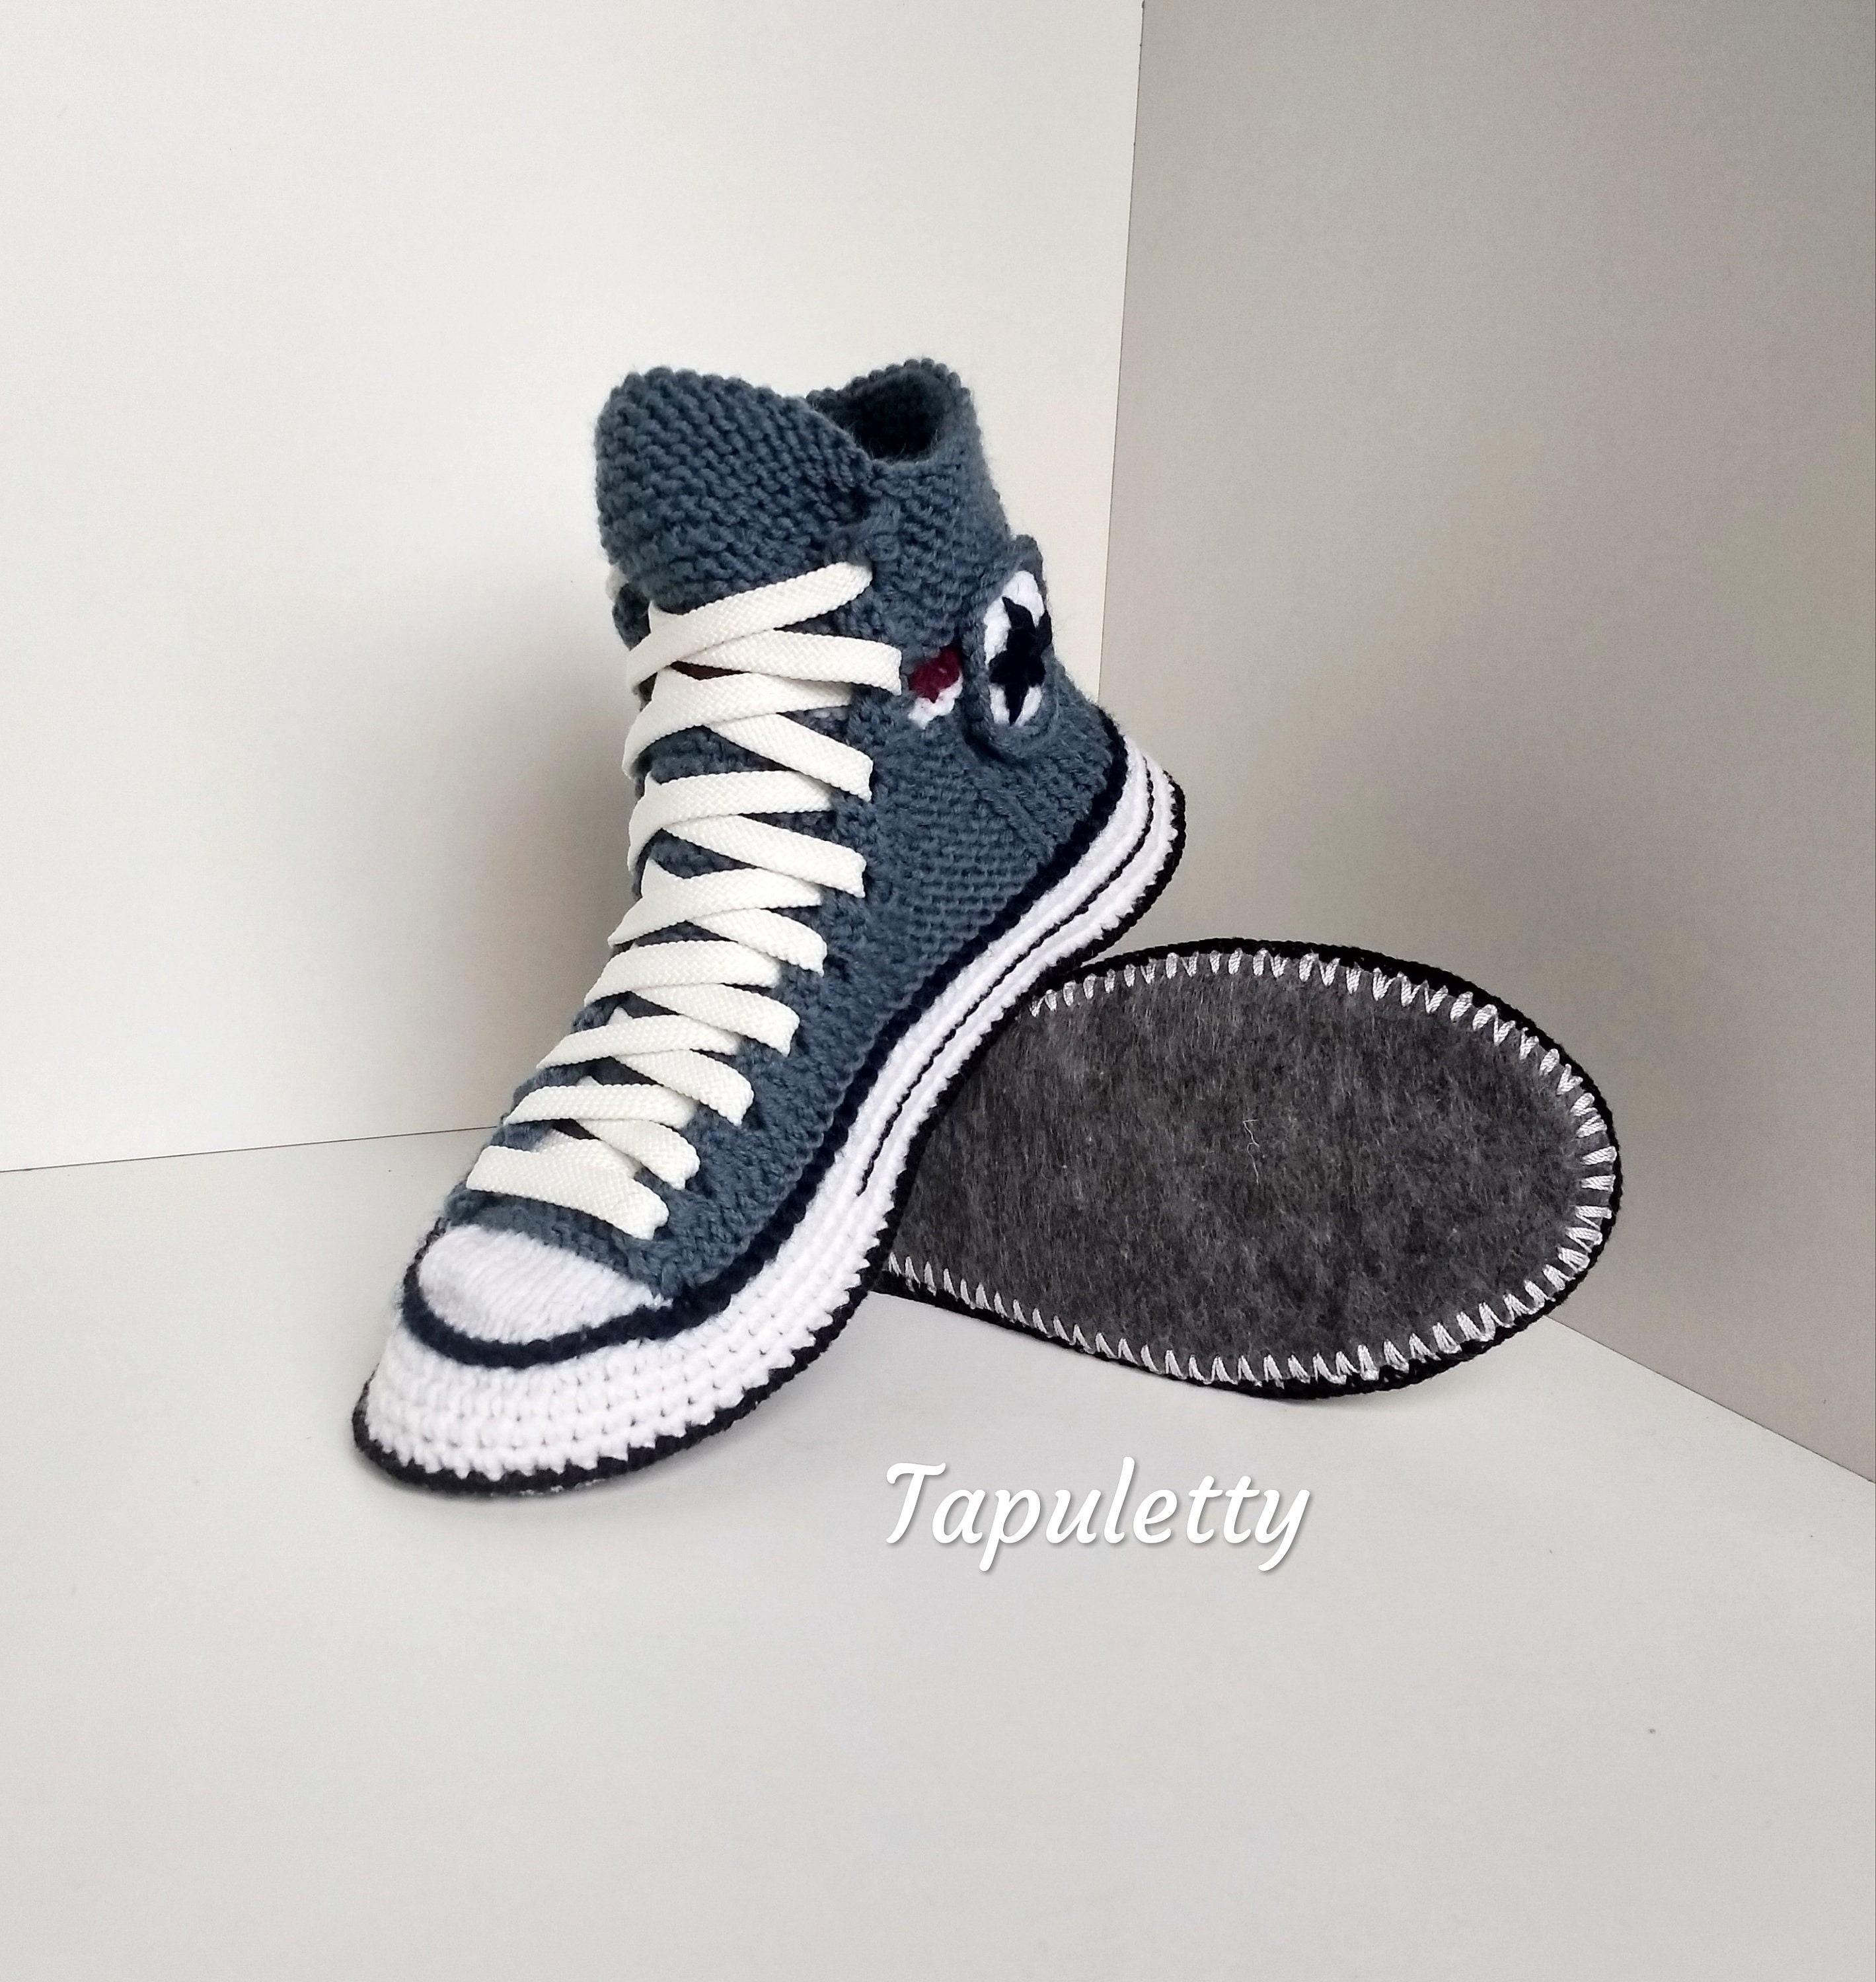 Knitted converse slippers43 House slippers men Crochet converse sneakers Socks with sole Crochet home slippers Athletic slippers Knit boots